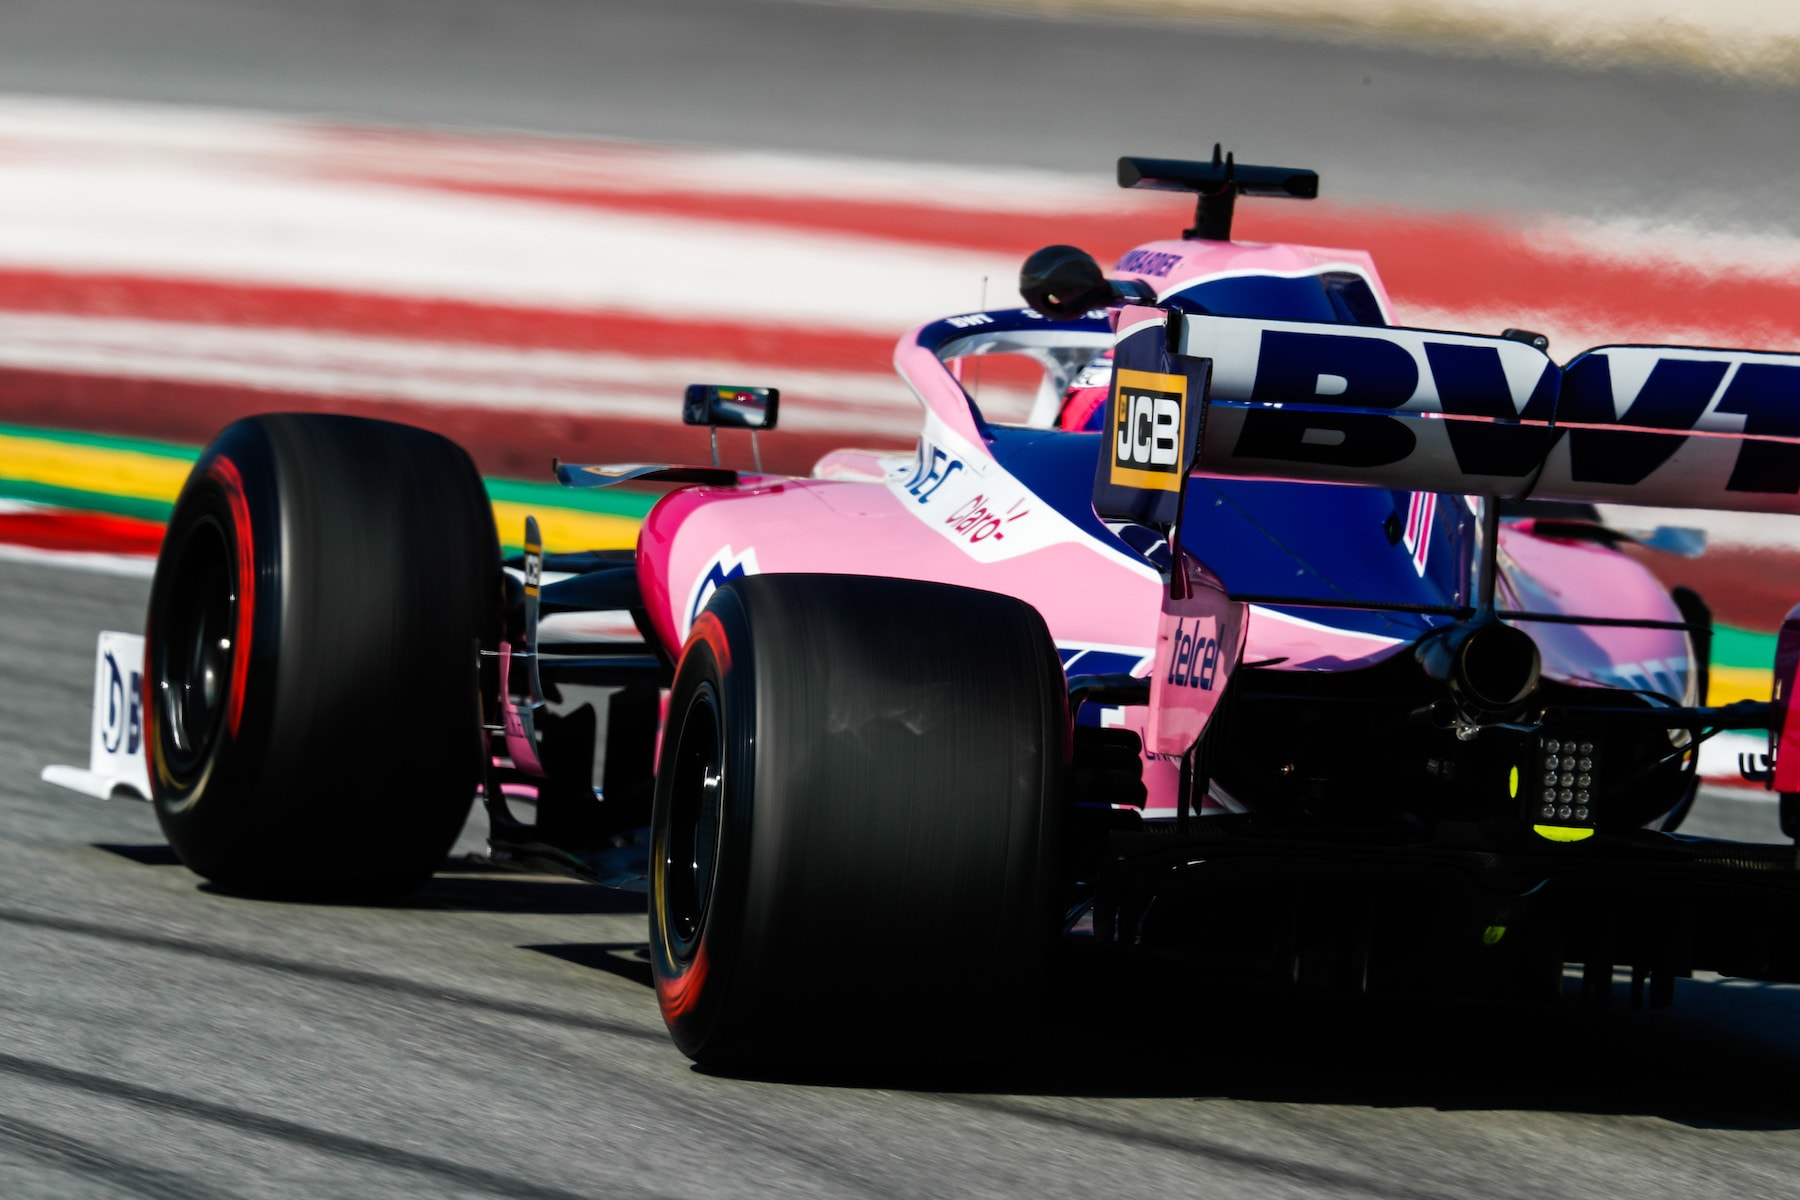 2019 Sergio Perez | Racing Point RP19 | 2019 Barcelona T2 D4 4.jpg